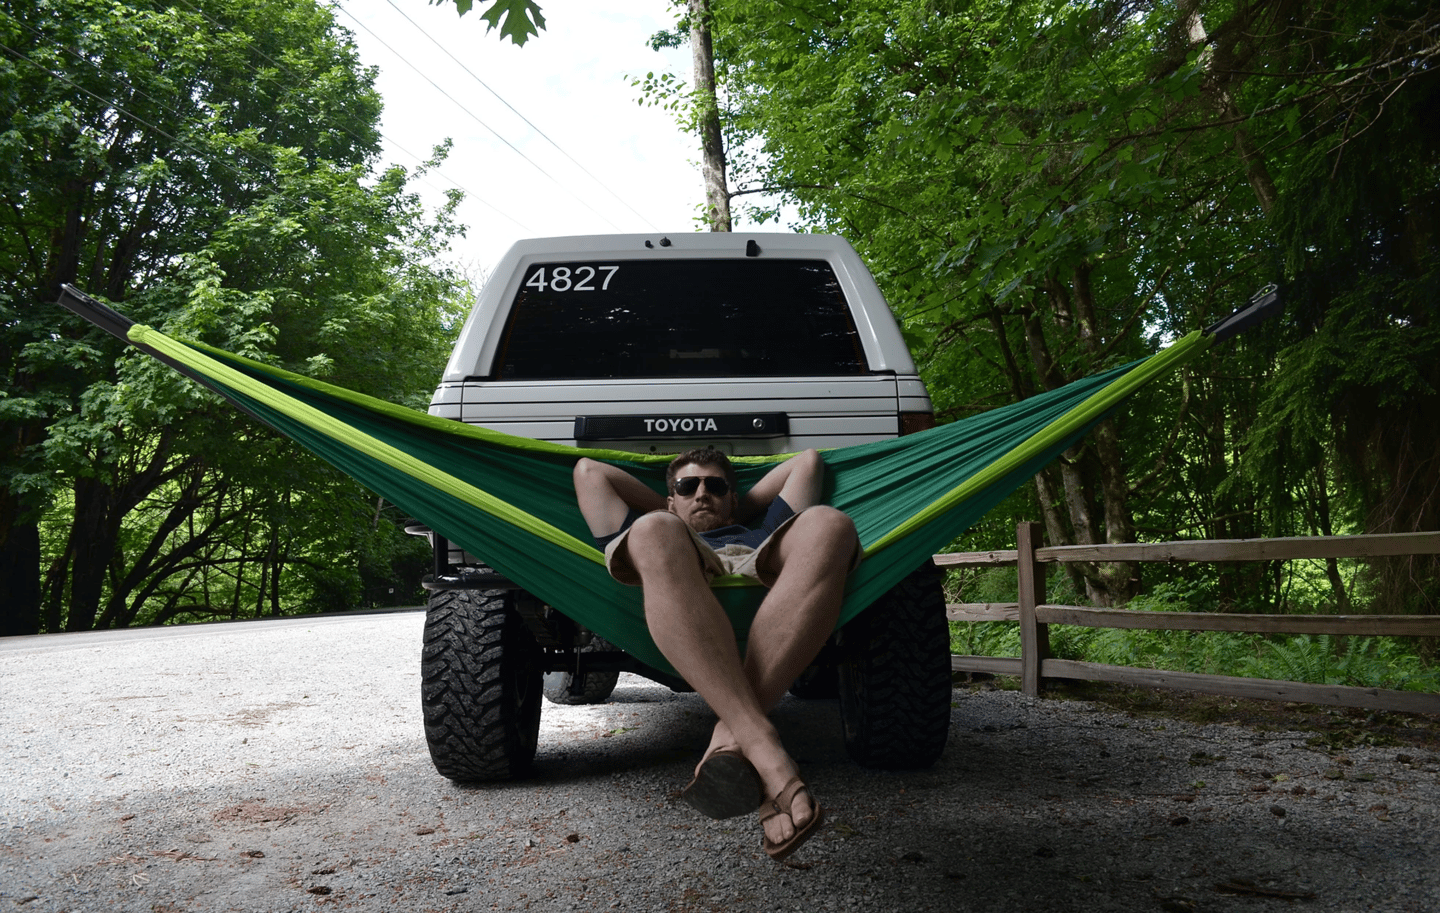 This guy hammocks, and he does it anywhere